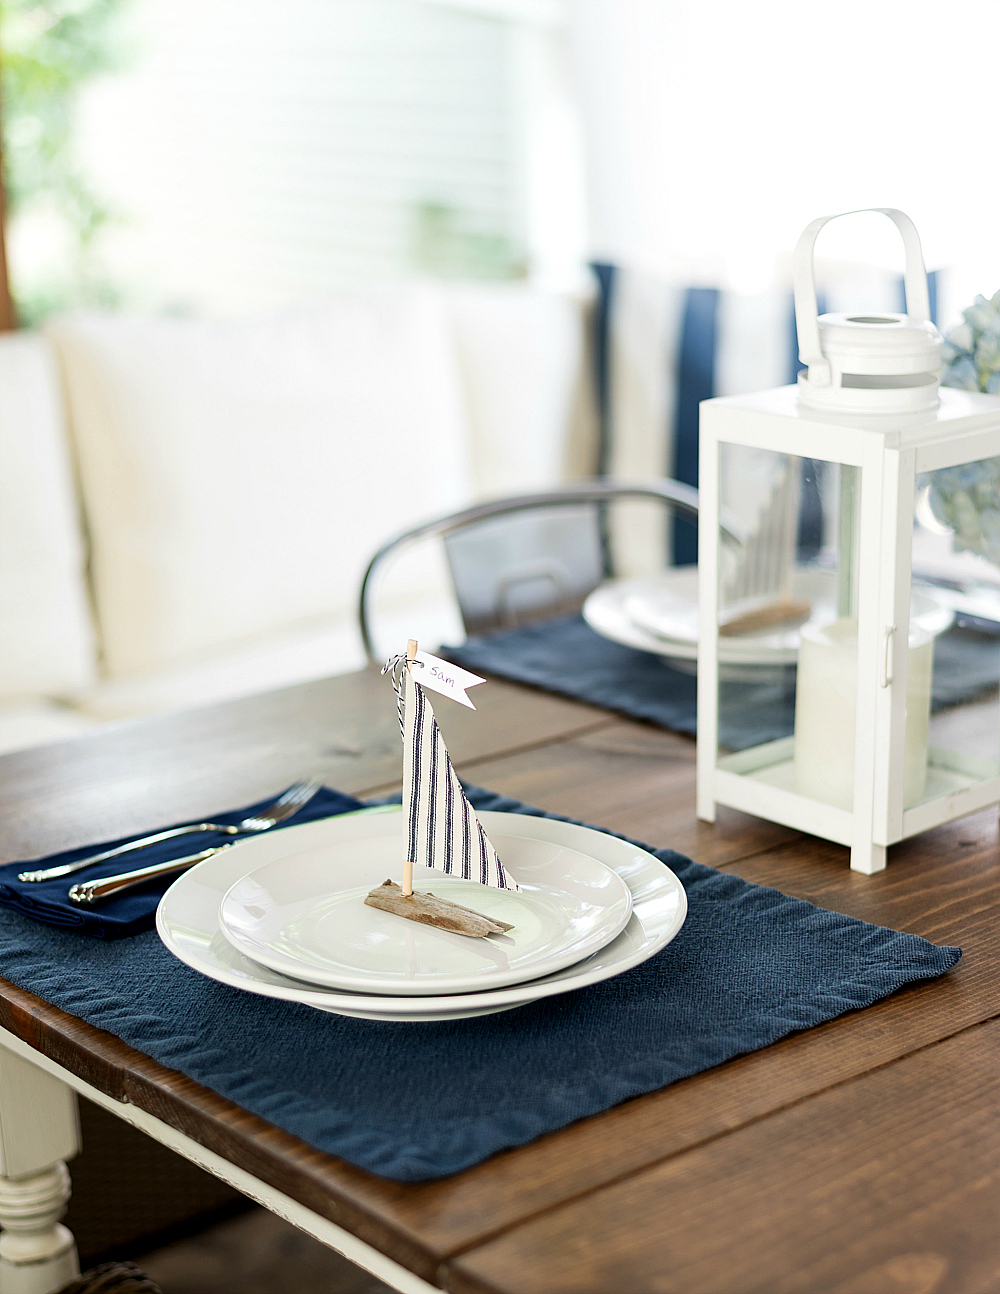 Wedding table setting ideas in navy white sailboats from driftwood